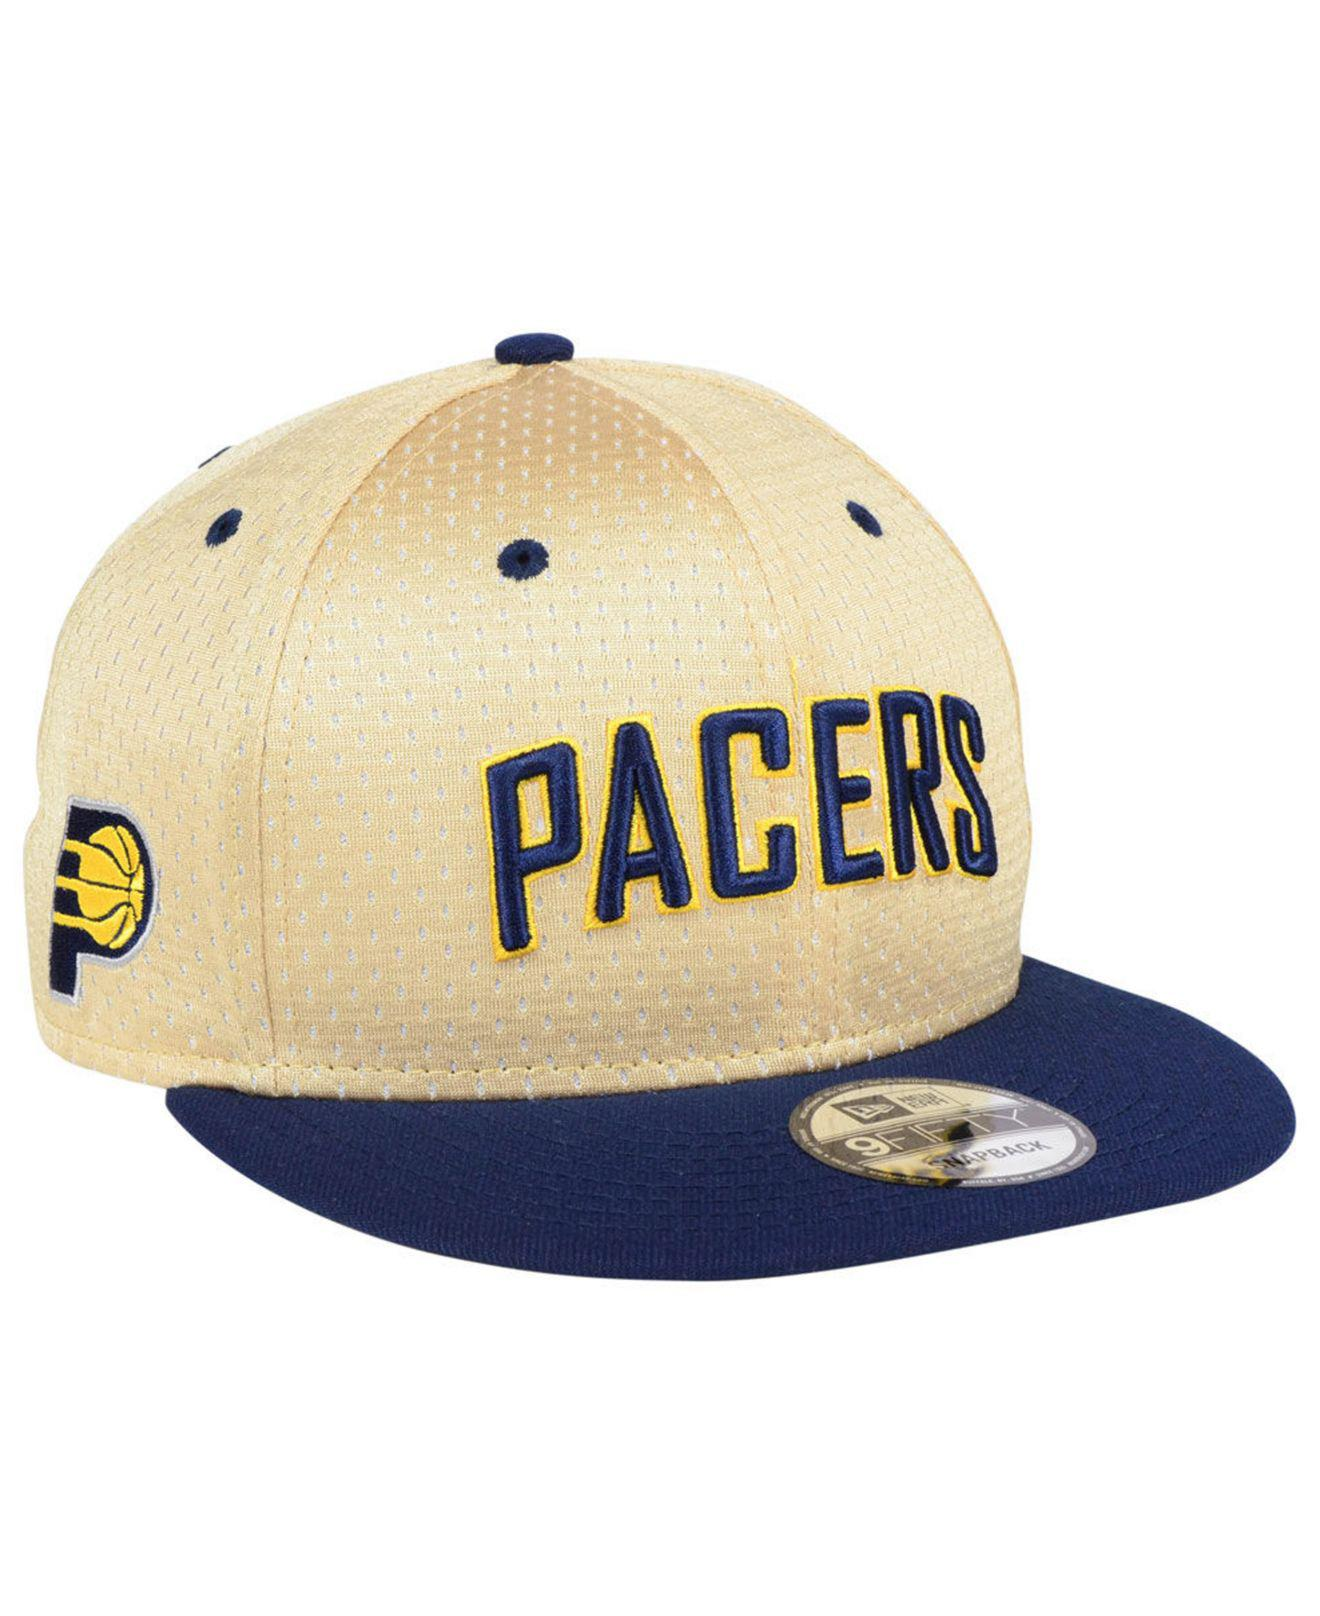 Lyst - Ktz Indiana Pacers Champagne 9fifty Snapback Cap in Blue for Men 7f2bded178d